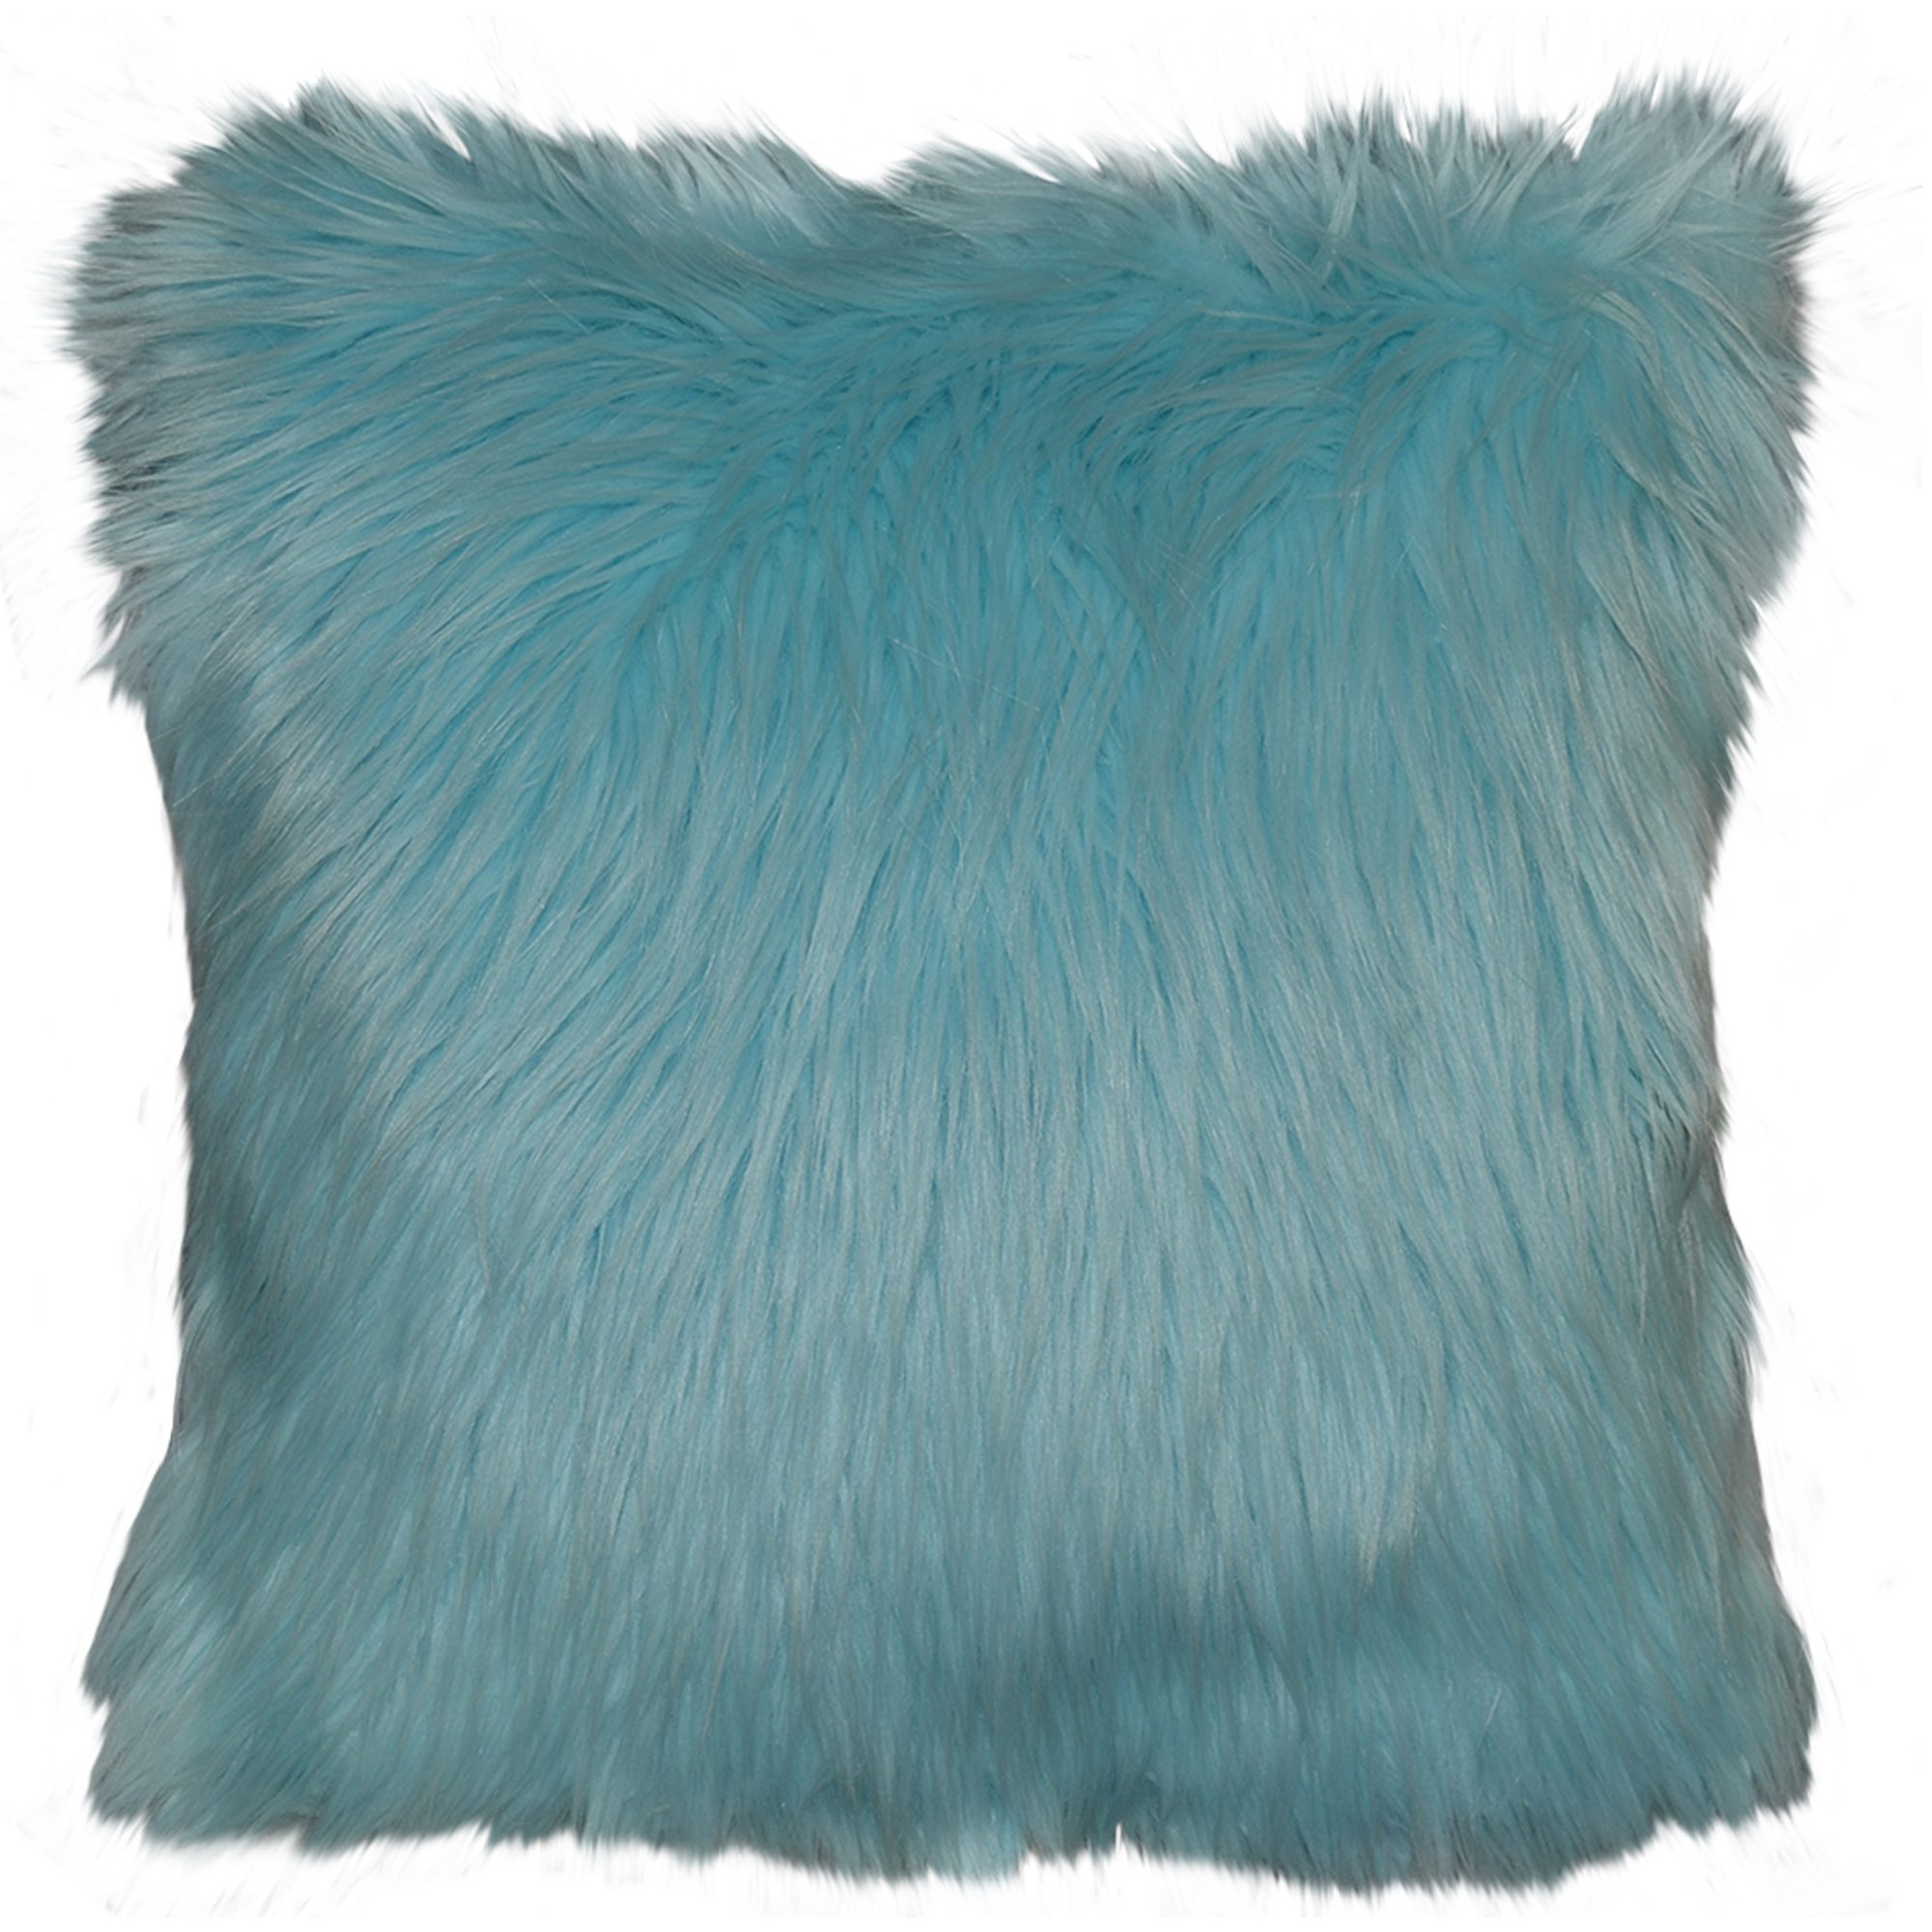 throws nxg design furs beverly mink blue angeles fur lamb and pillows pillow interior david hills los blanket appel silver